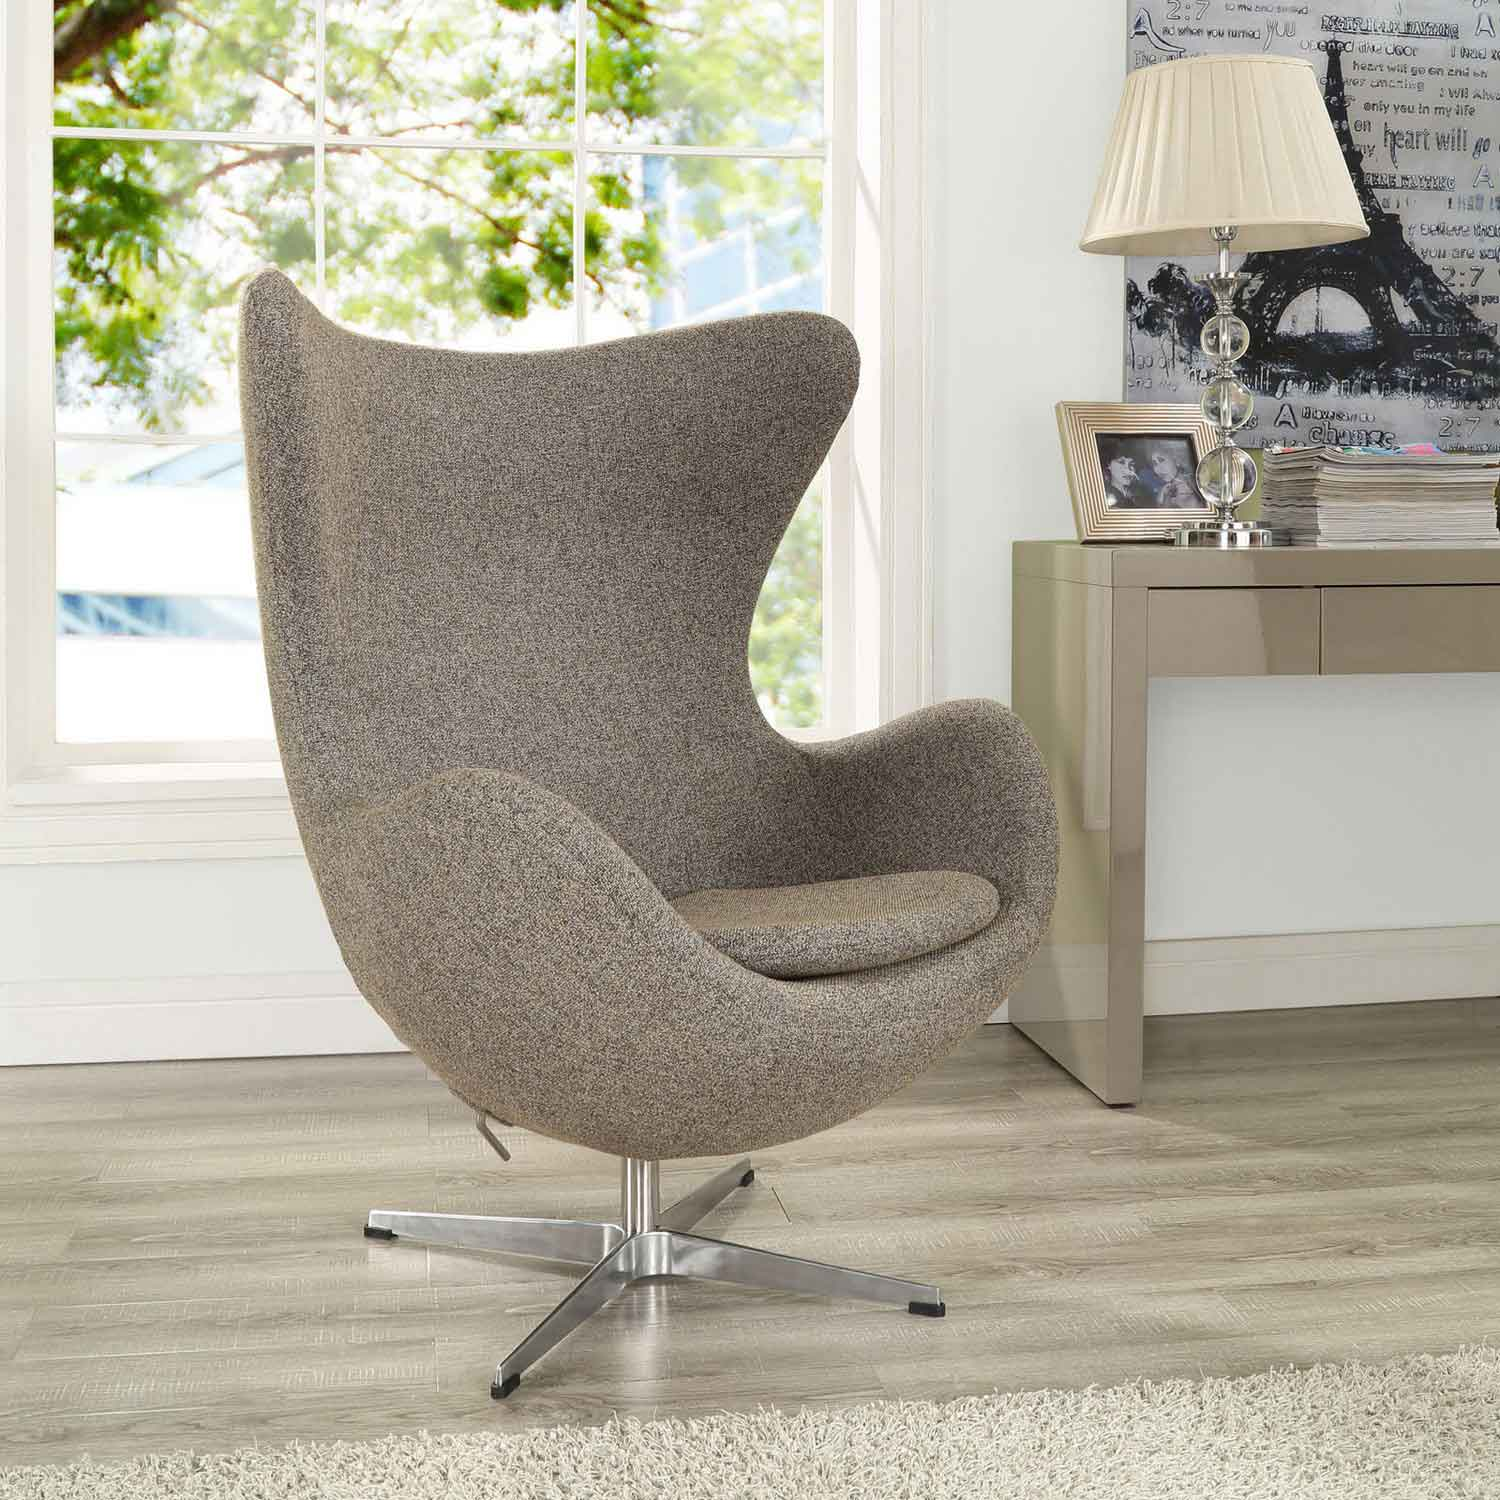 Modway Glove Wool Lounge Chair - Oatmeal